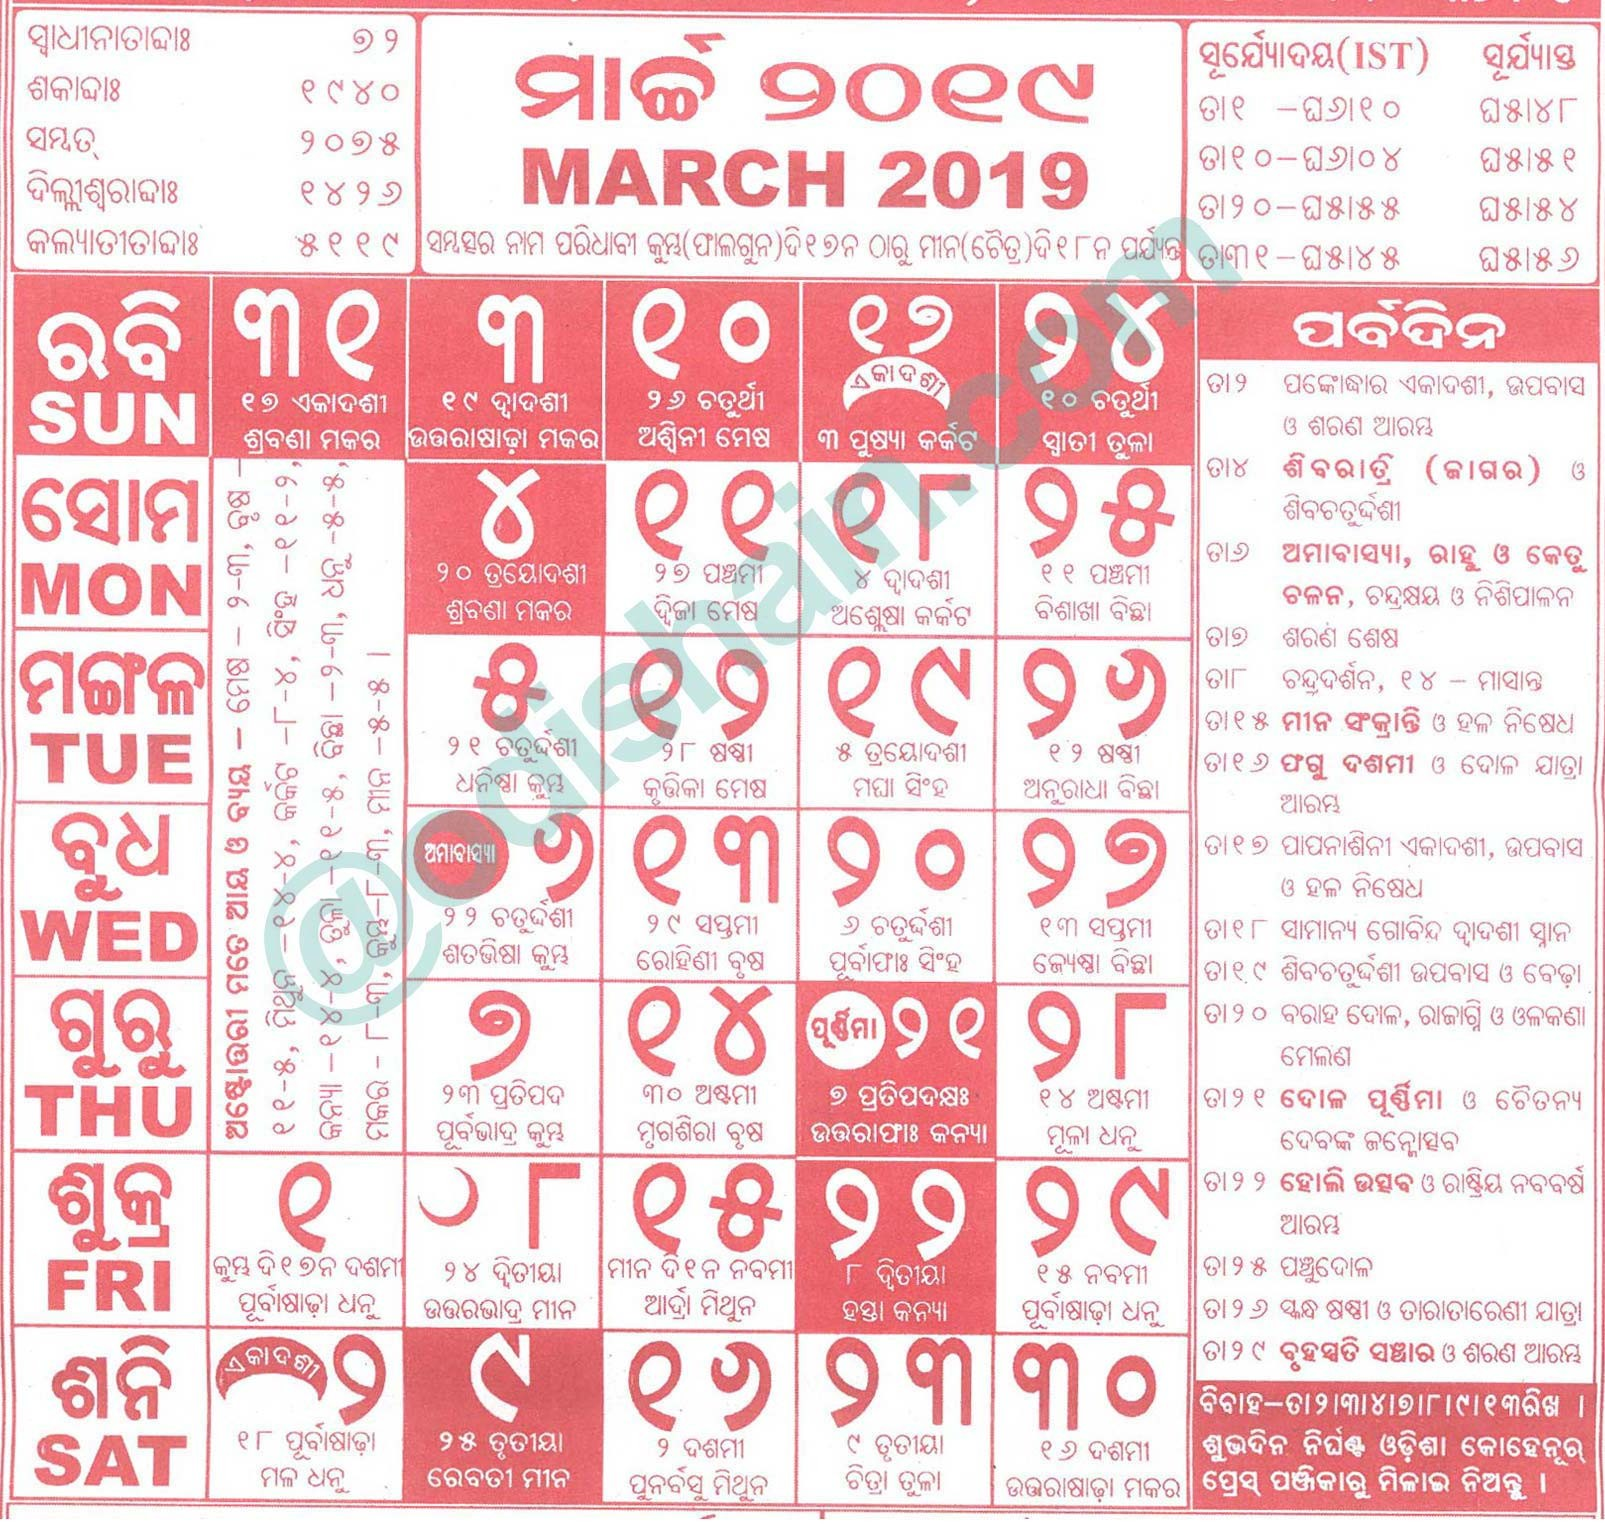 March Calendar 2019 Más Actual Odia Calendar 2019 with March Odishain Of March Calendar 2019 Más Actual Odia Calendar 2019 with March Odishain